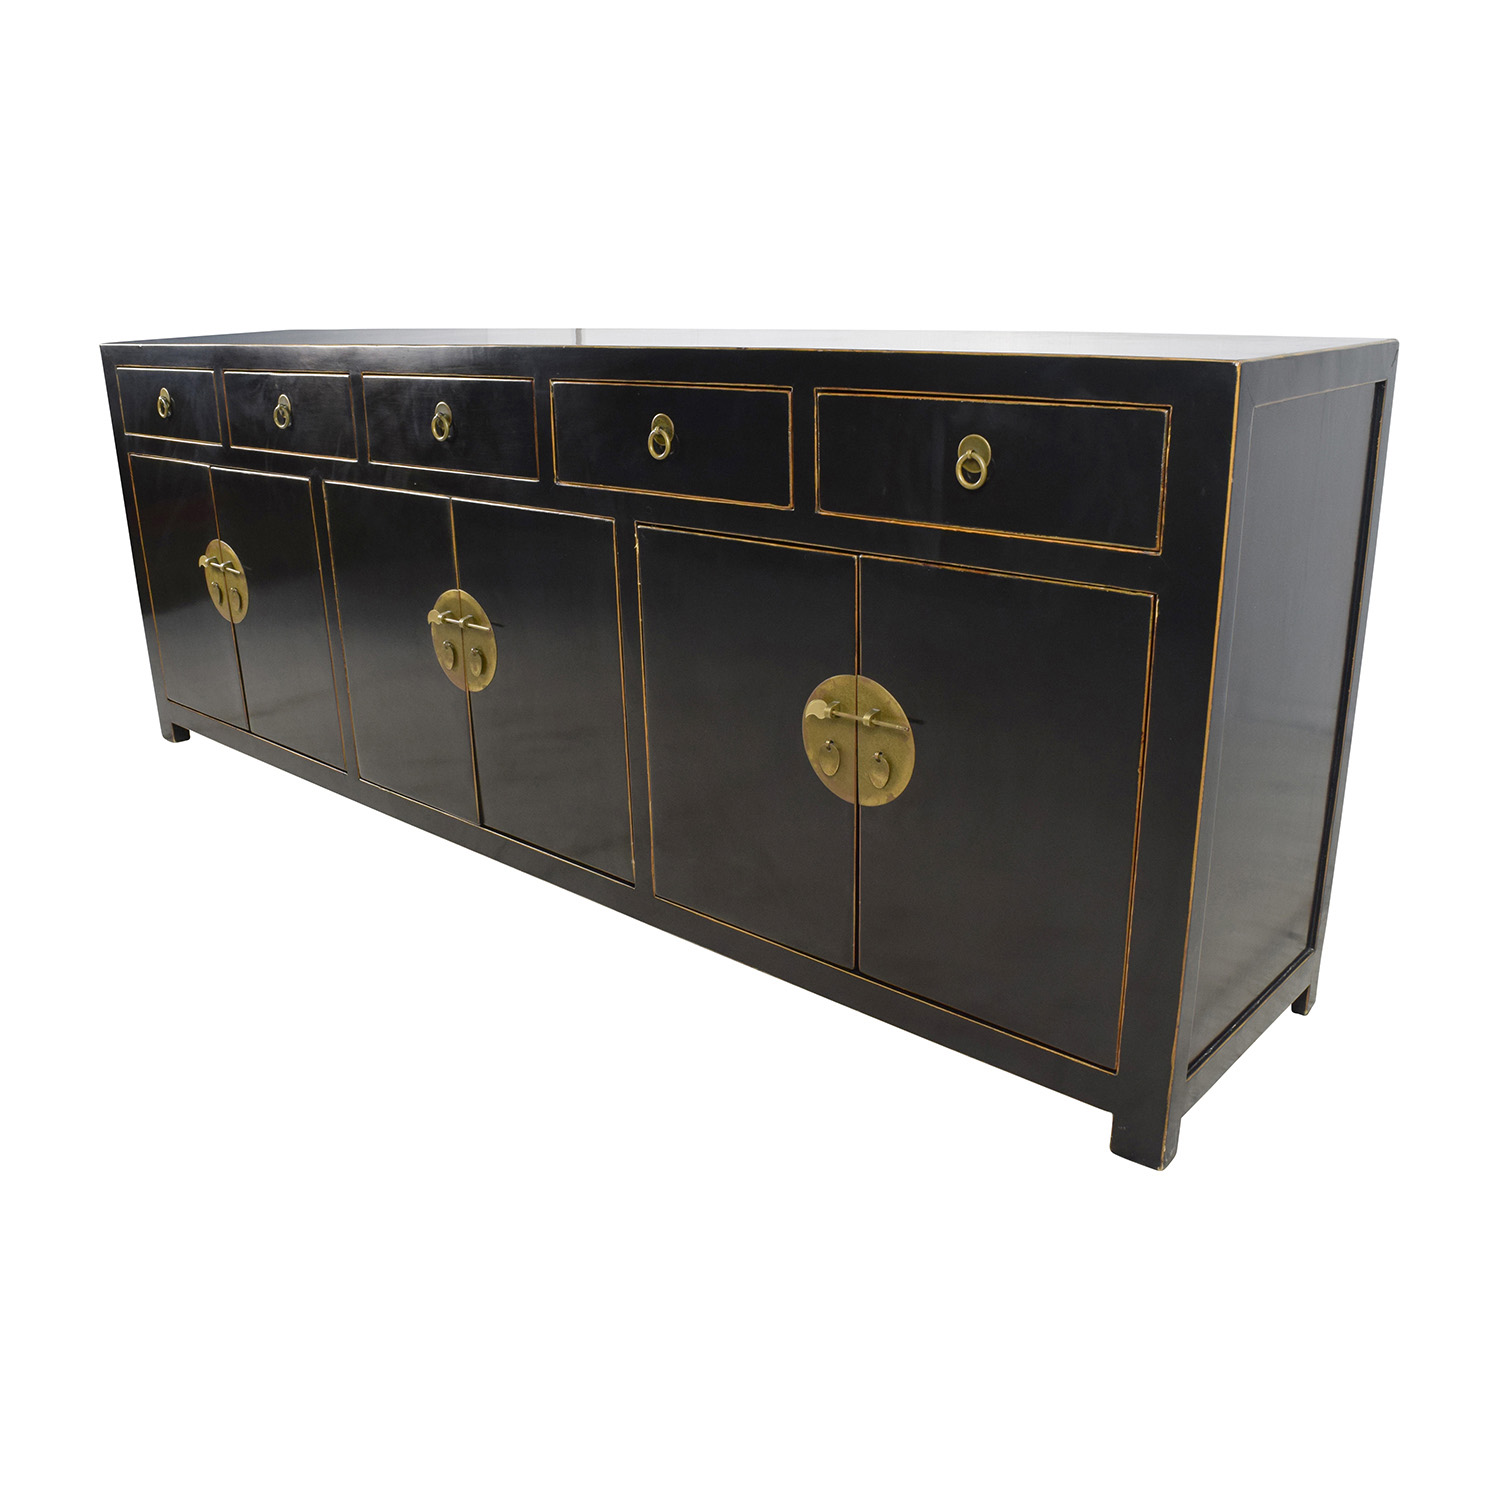 85 off custom made black drawer and cabinet sideboard storage. Black Bedroom Furniture Sets. Home Design Ideas